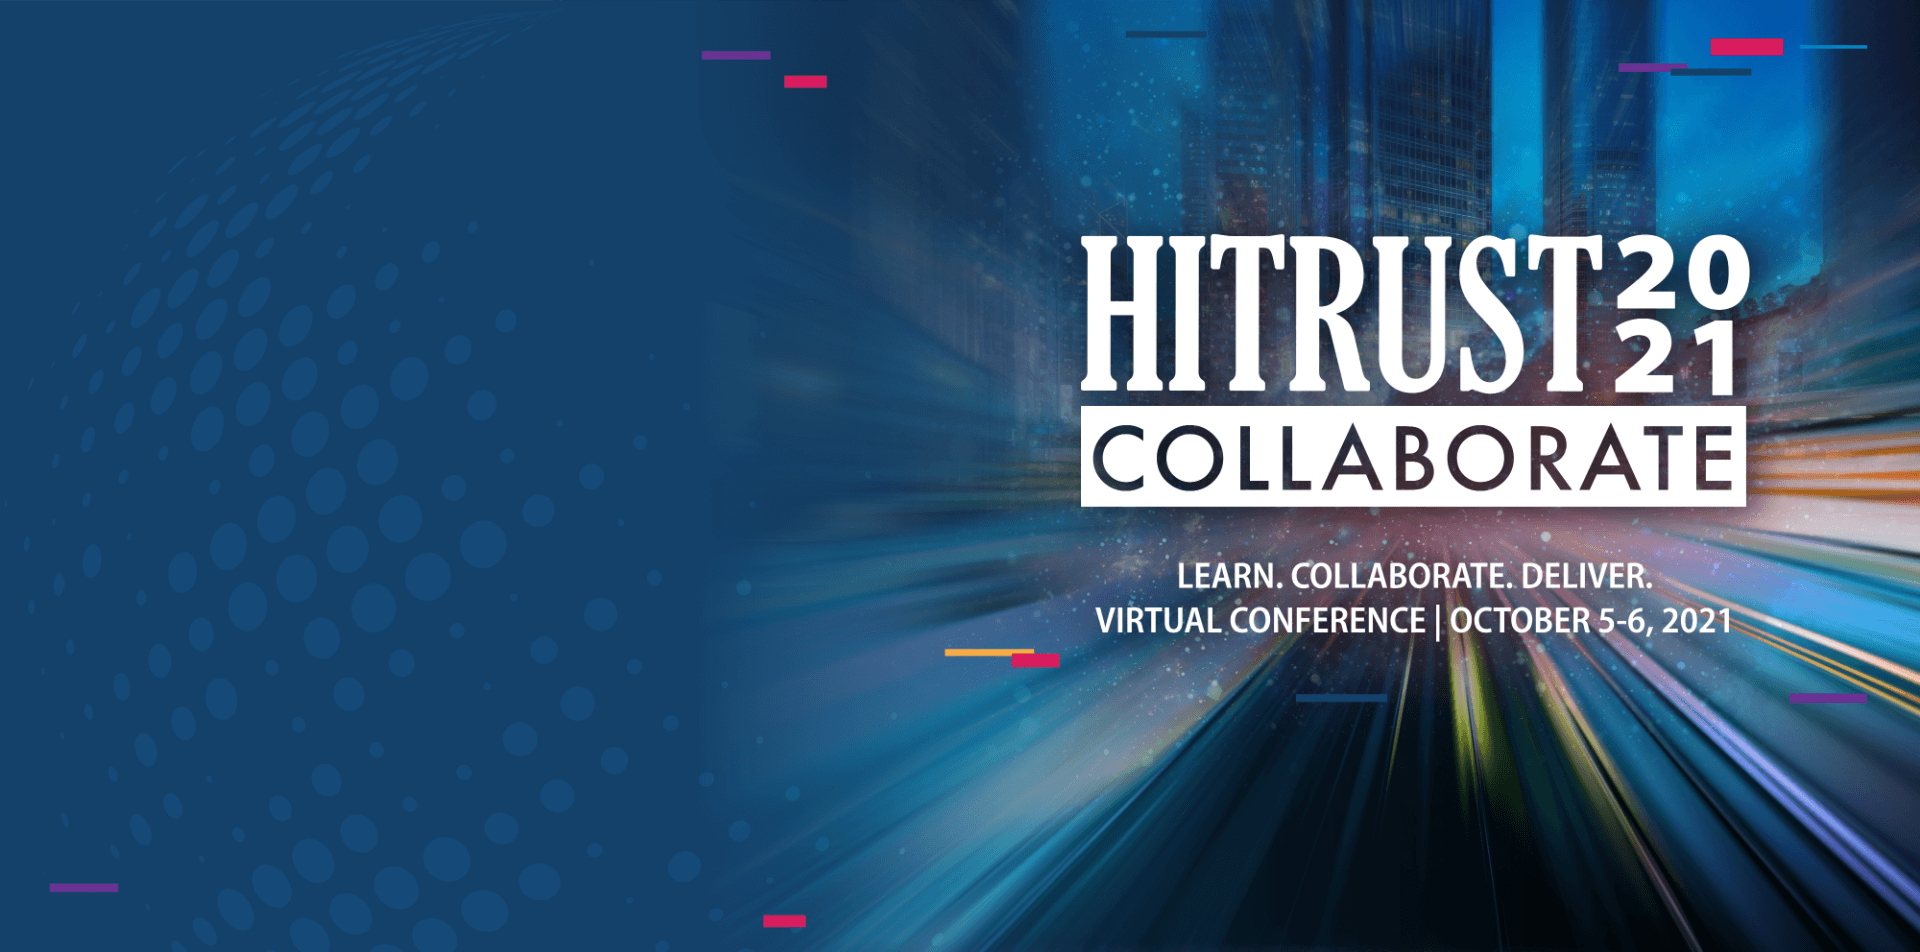 HITRUST 2021 Collaborate: Learn. Collaborate. Deliver. Virtual Conference October 5-6, 2021